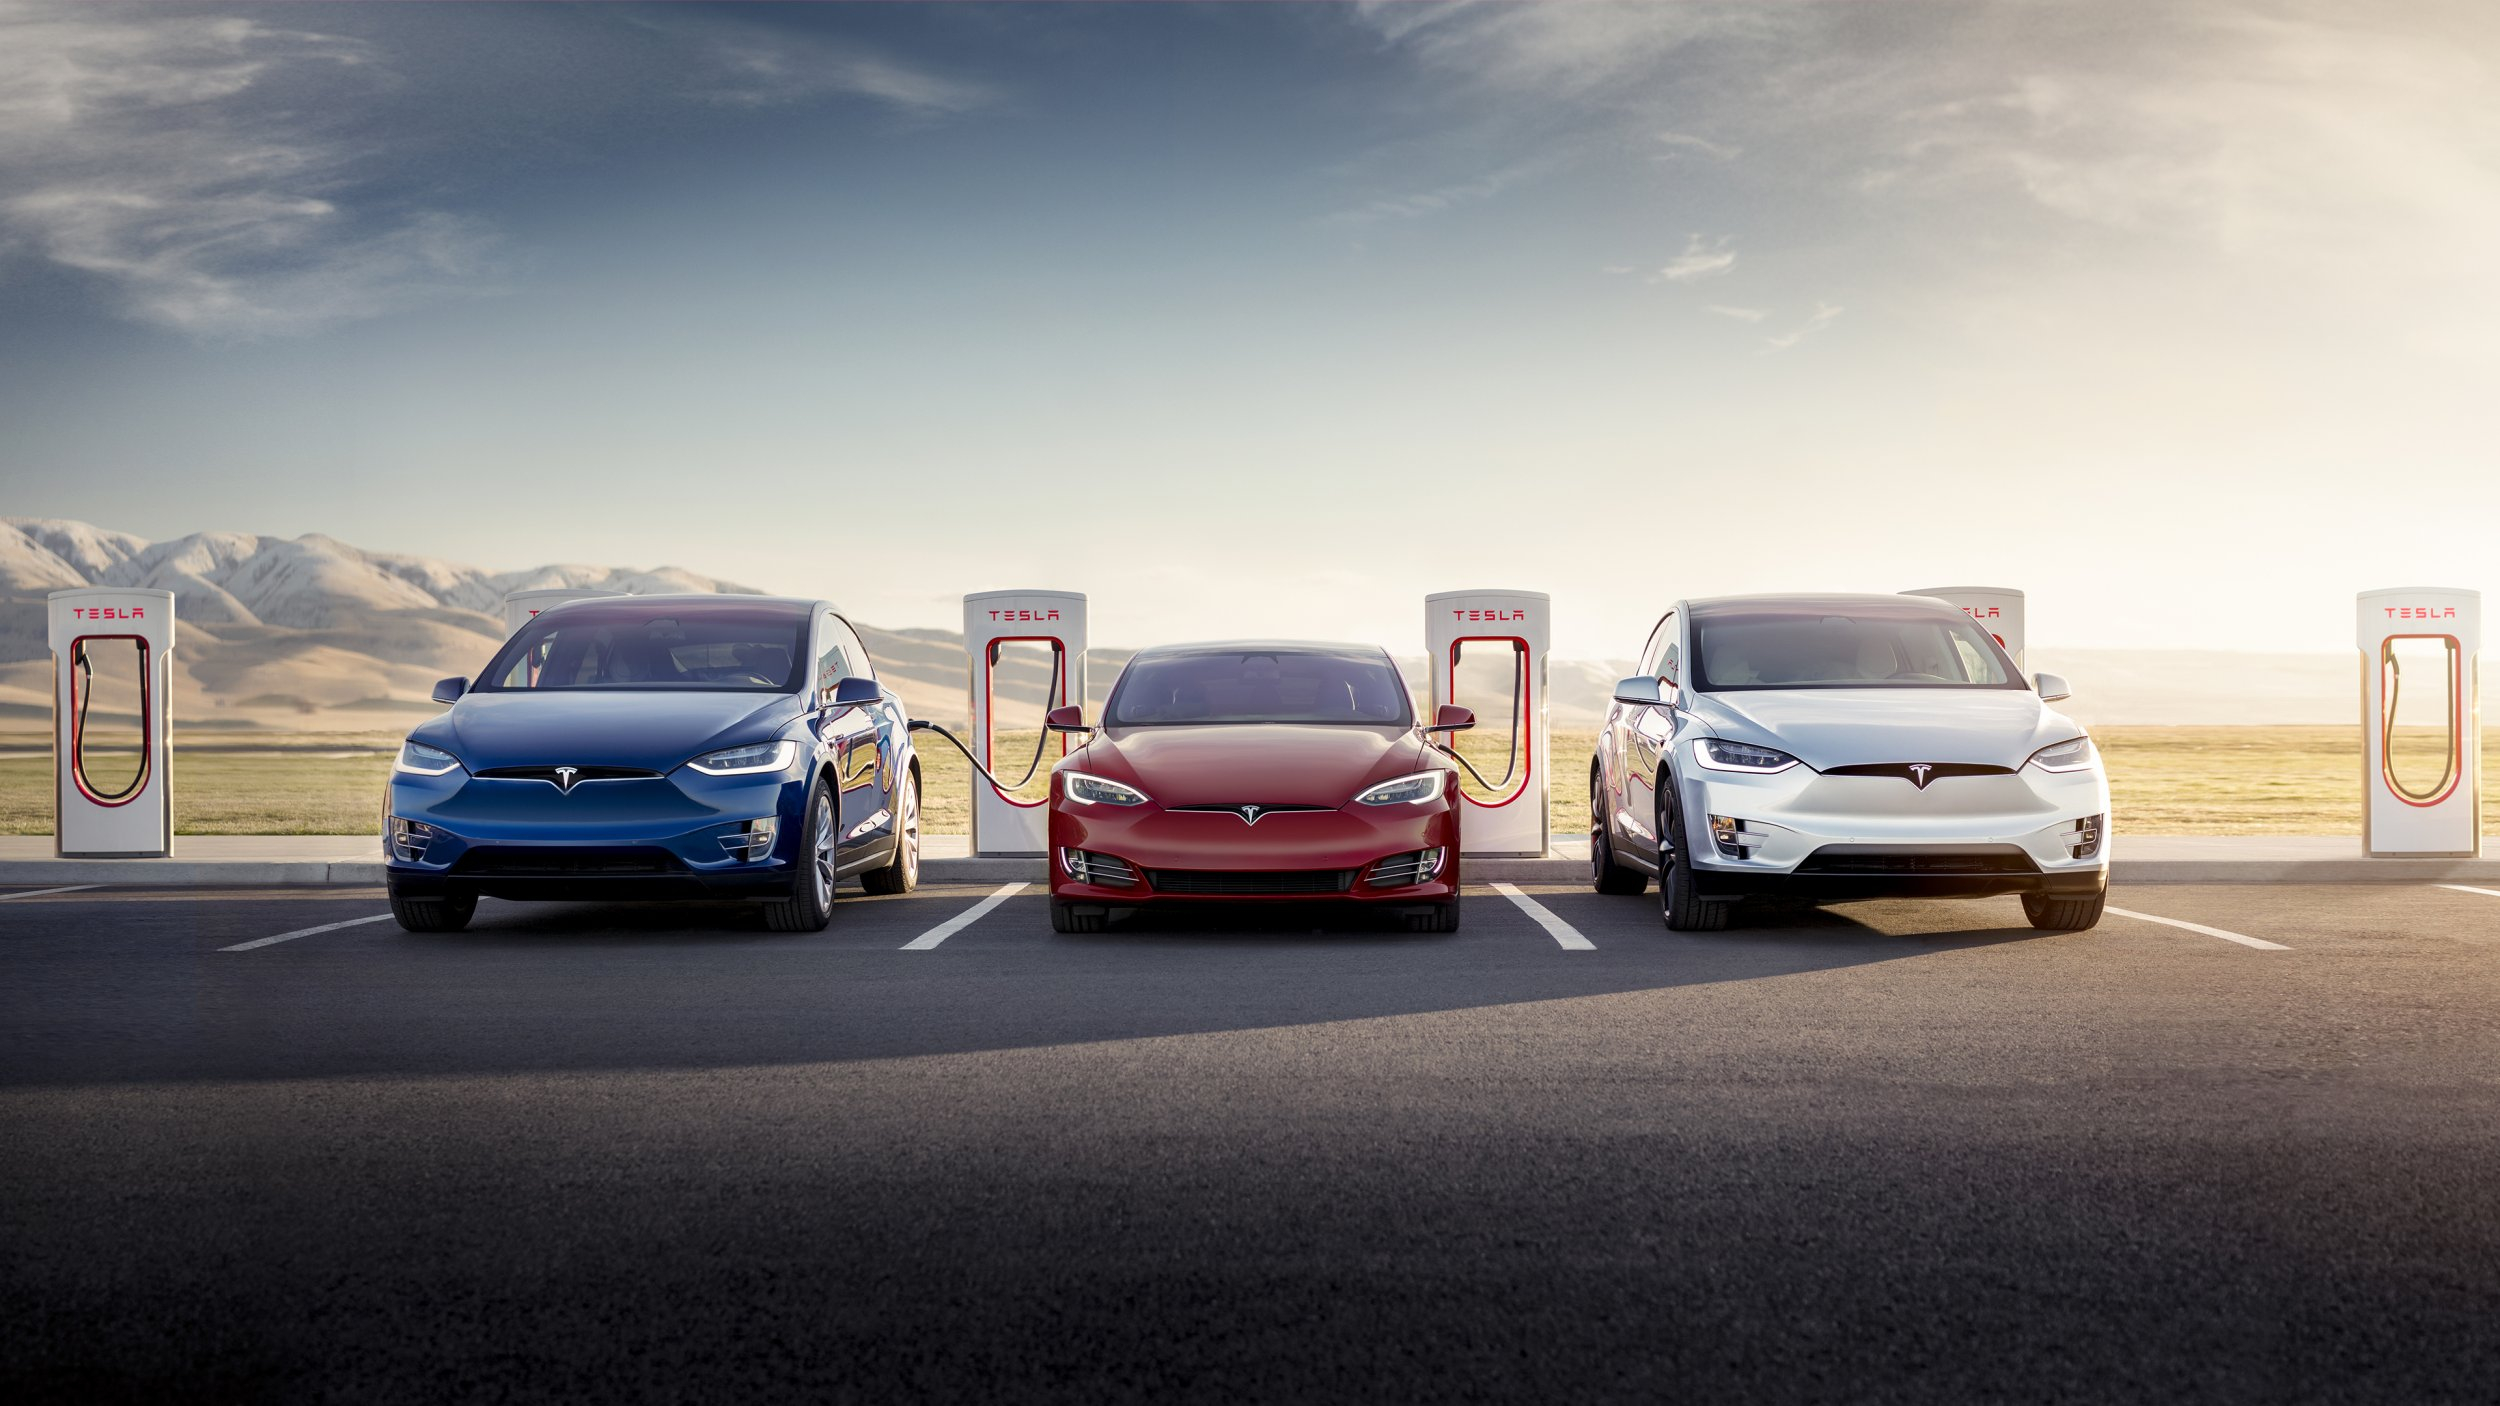 Tesla Model 3 Owners Will Have to Start Paying for Internet